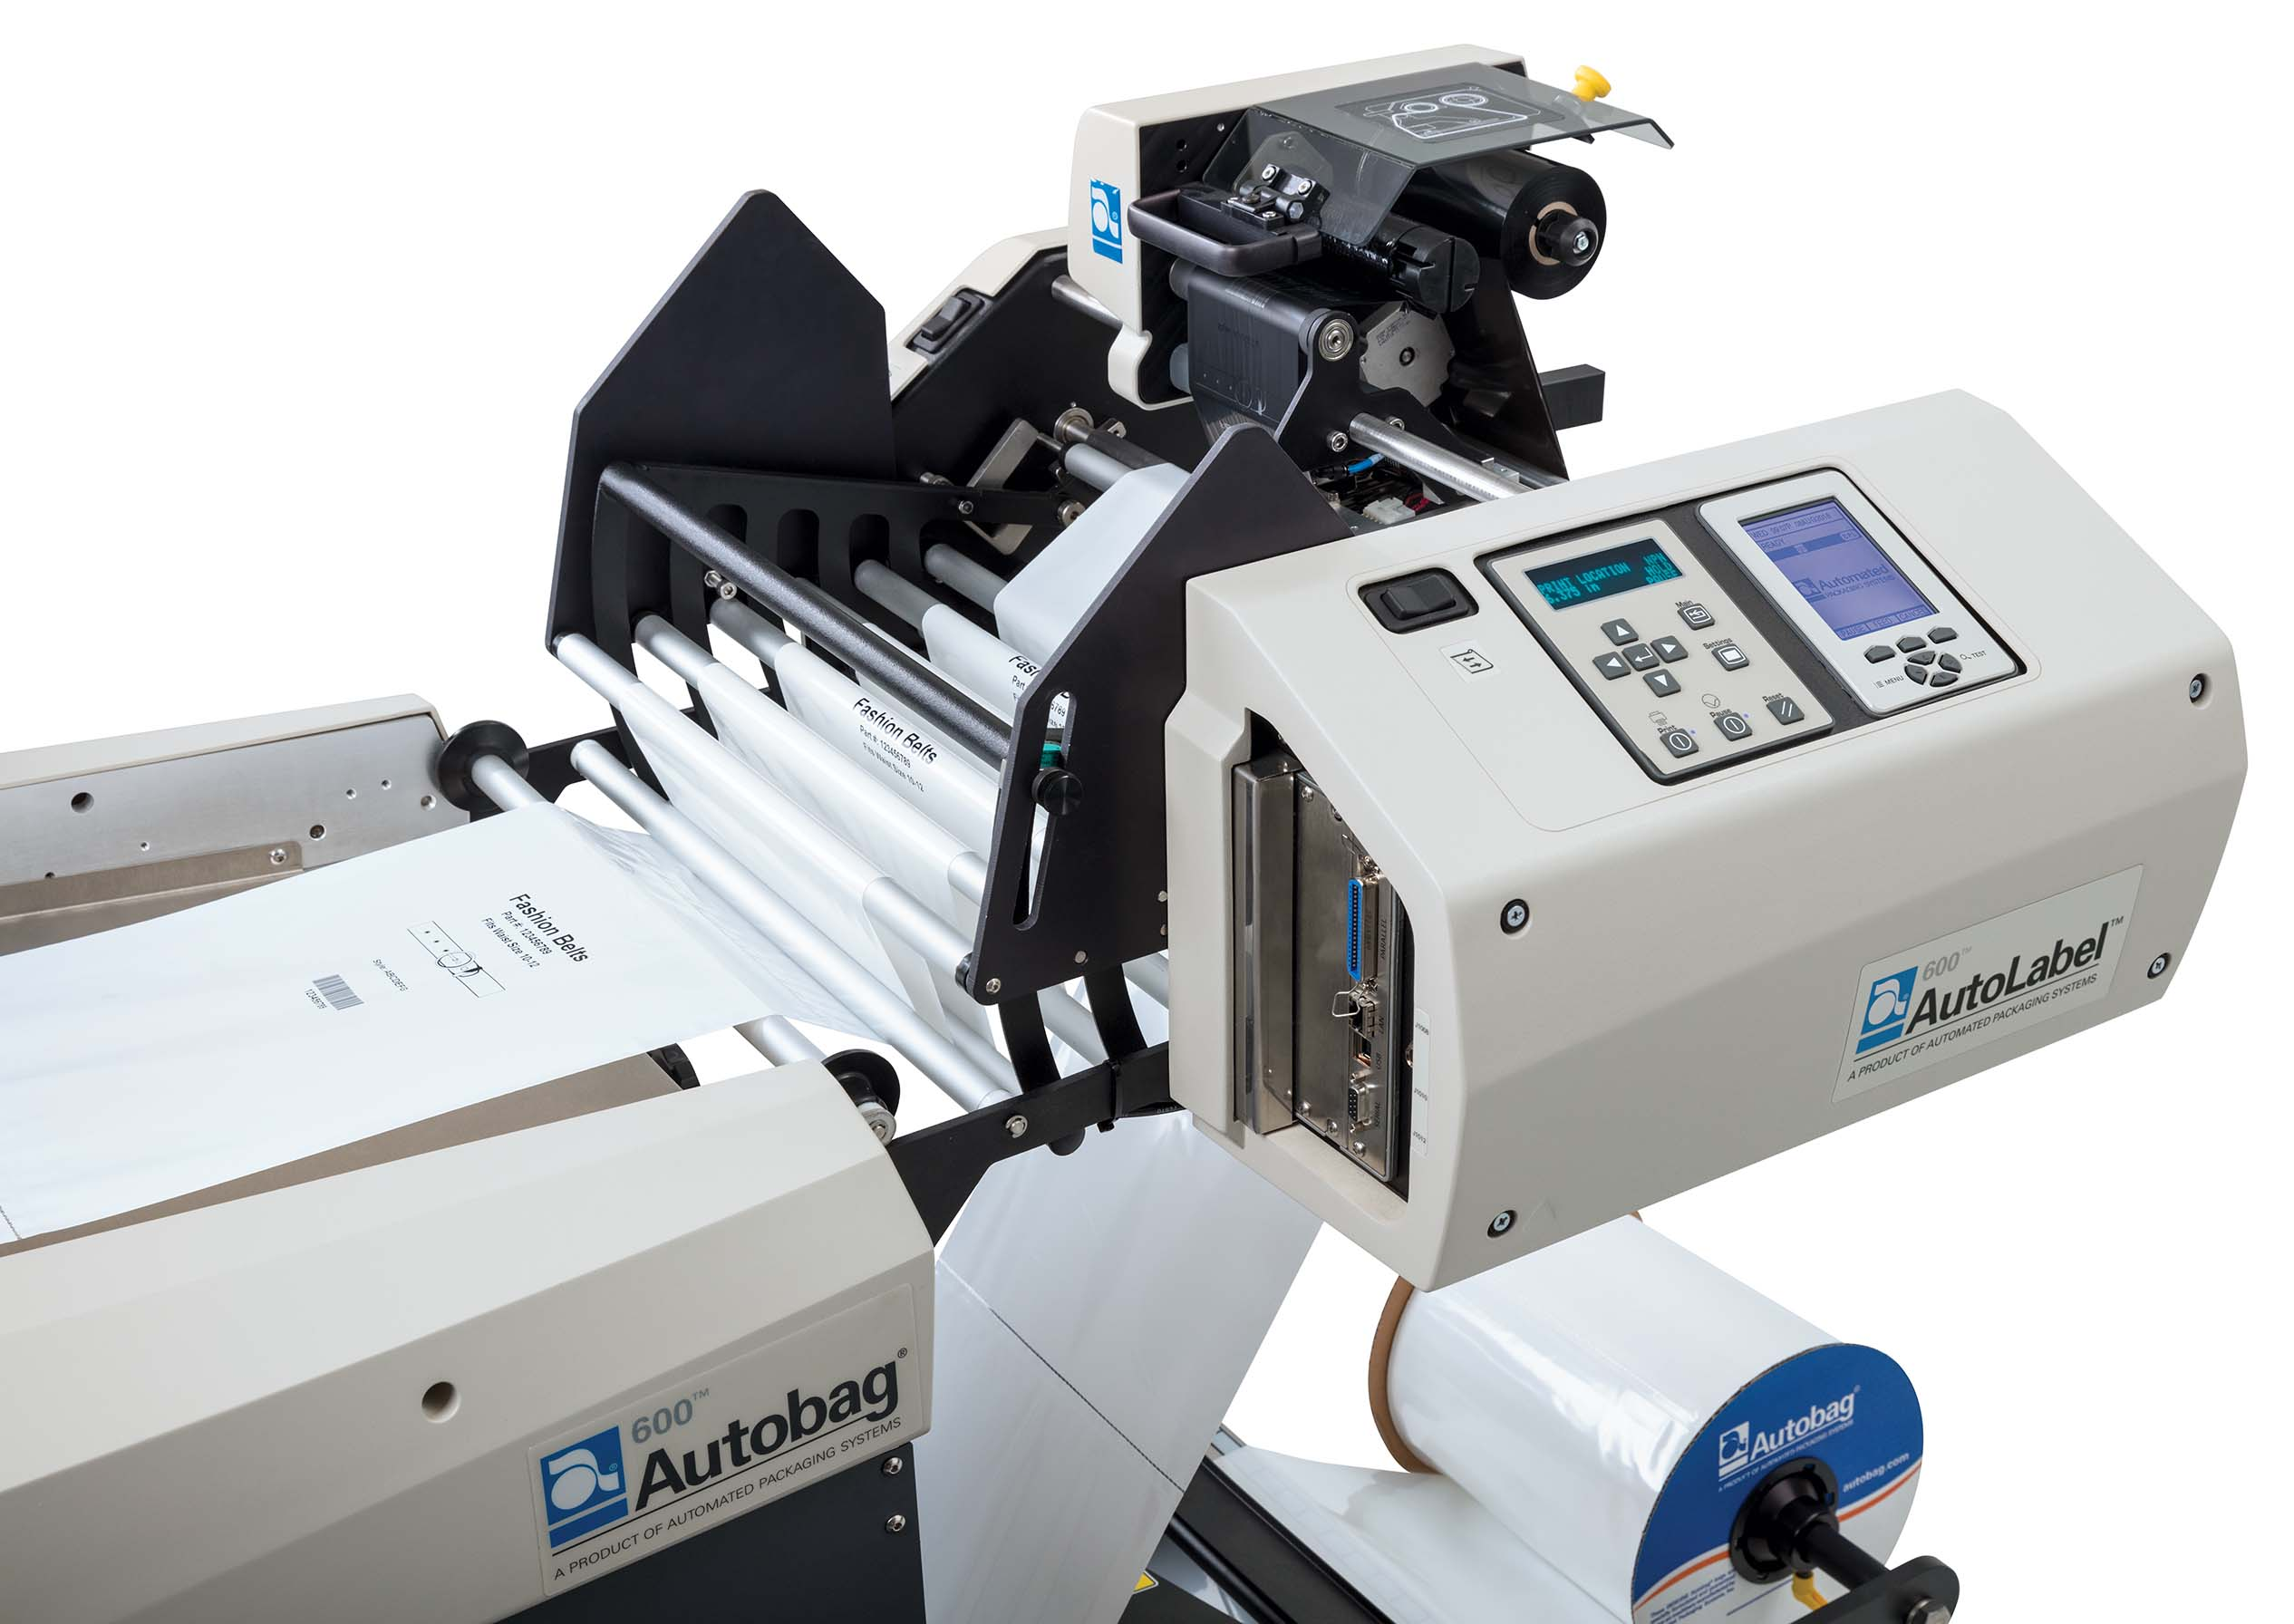 AutoLabel 600 Wide Thermal Transfer Printer Close-up